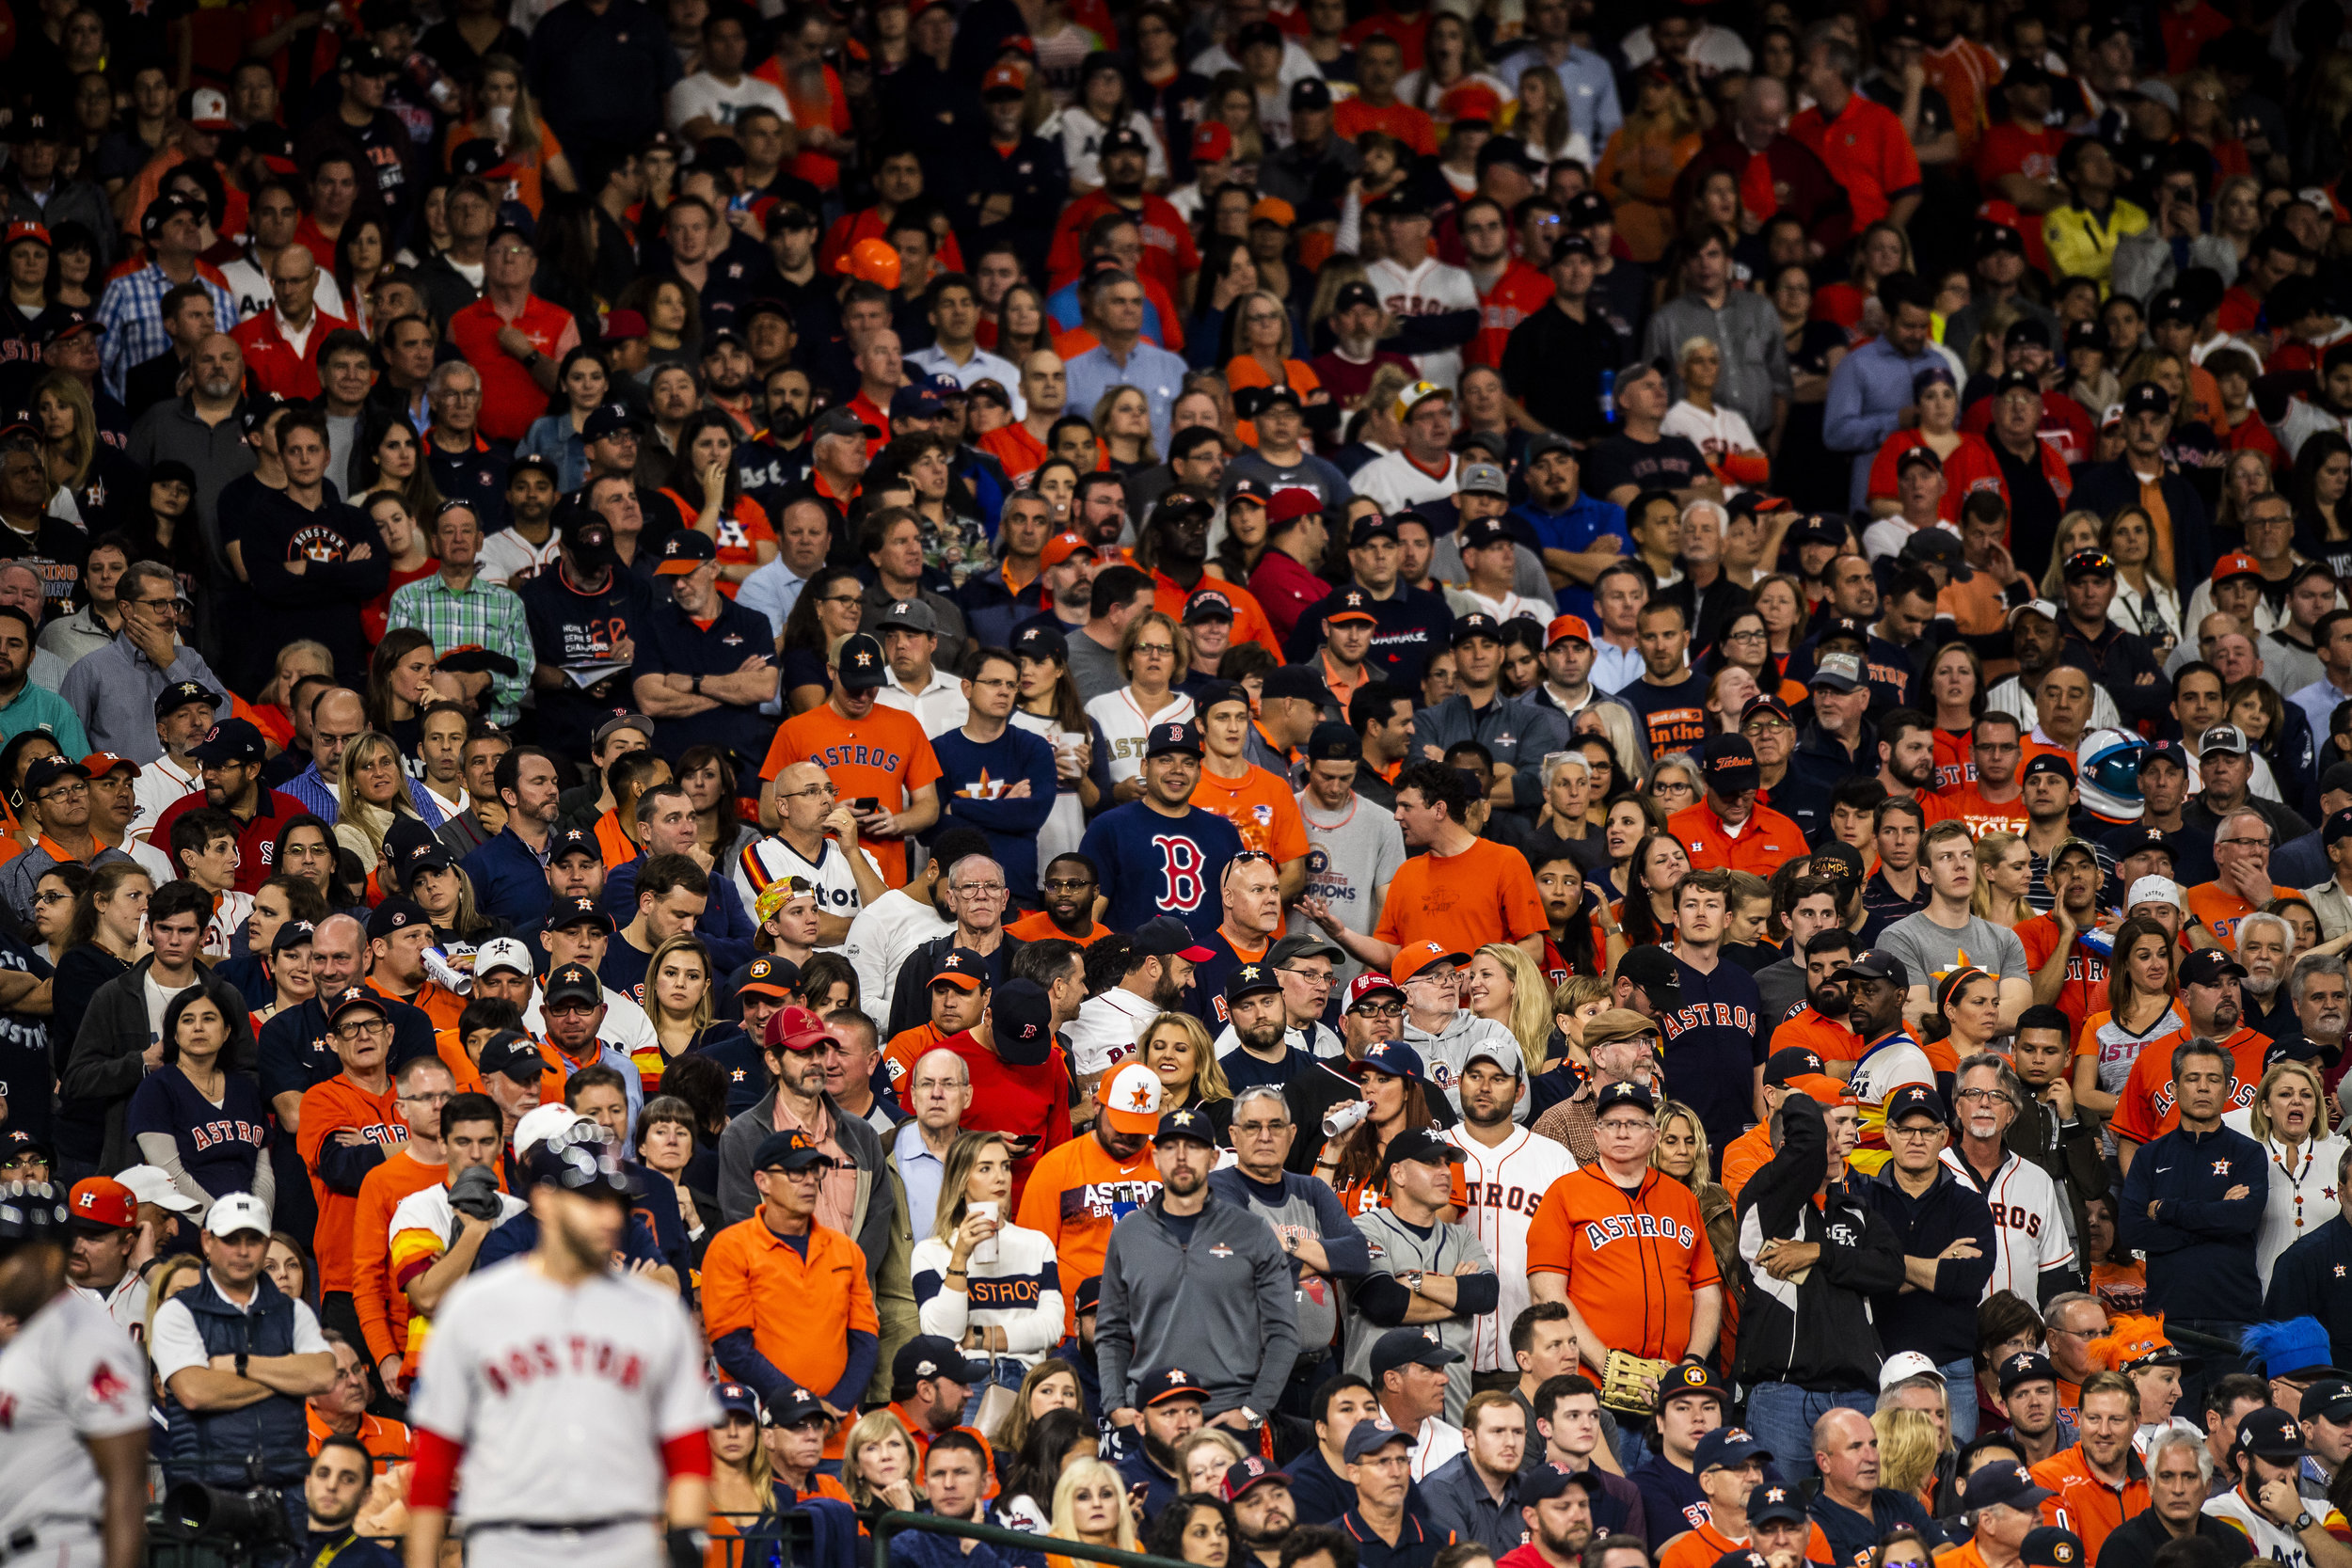 October 17, 2018, Houston, TX: One lone Red Sox fan in the crowd of Astros fans as the Boston Red Sox face the Houston Astros in Game 4 of the ALCS at Minute Maid Park in Houston, Texas on Wednesday, October 17, 2018. (Photo by Matthew Thomas/Boston Red Sox)